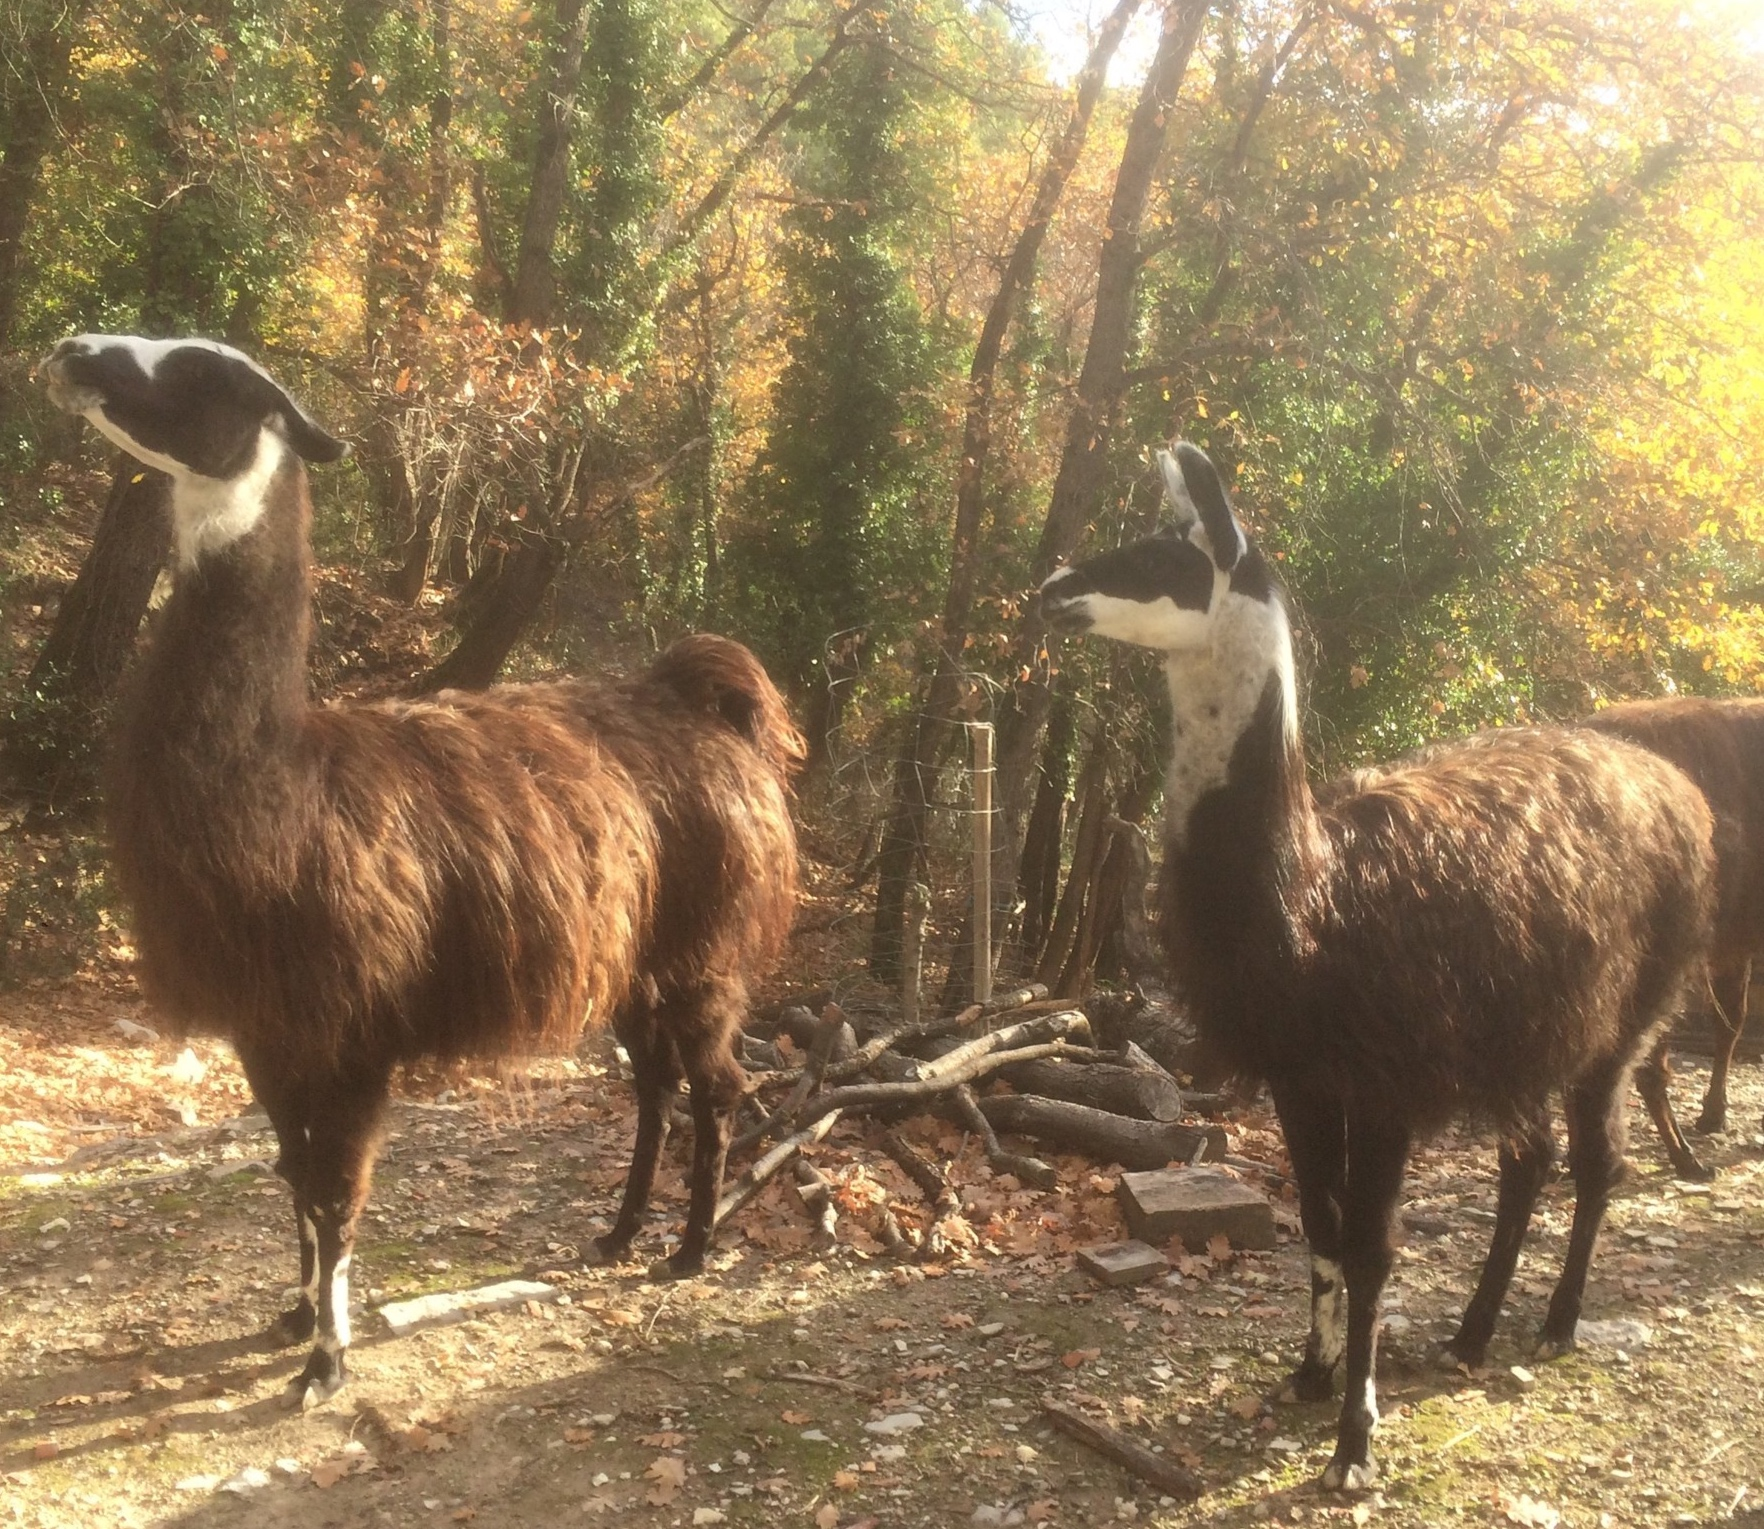 The Llamas at Creve-Coeur